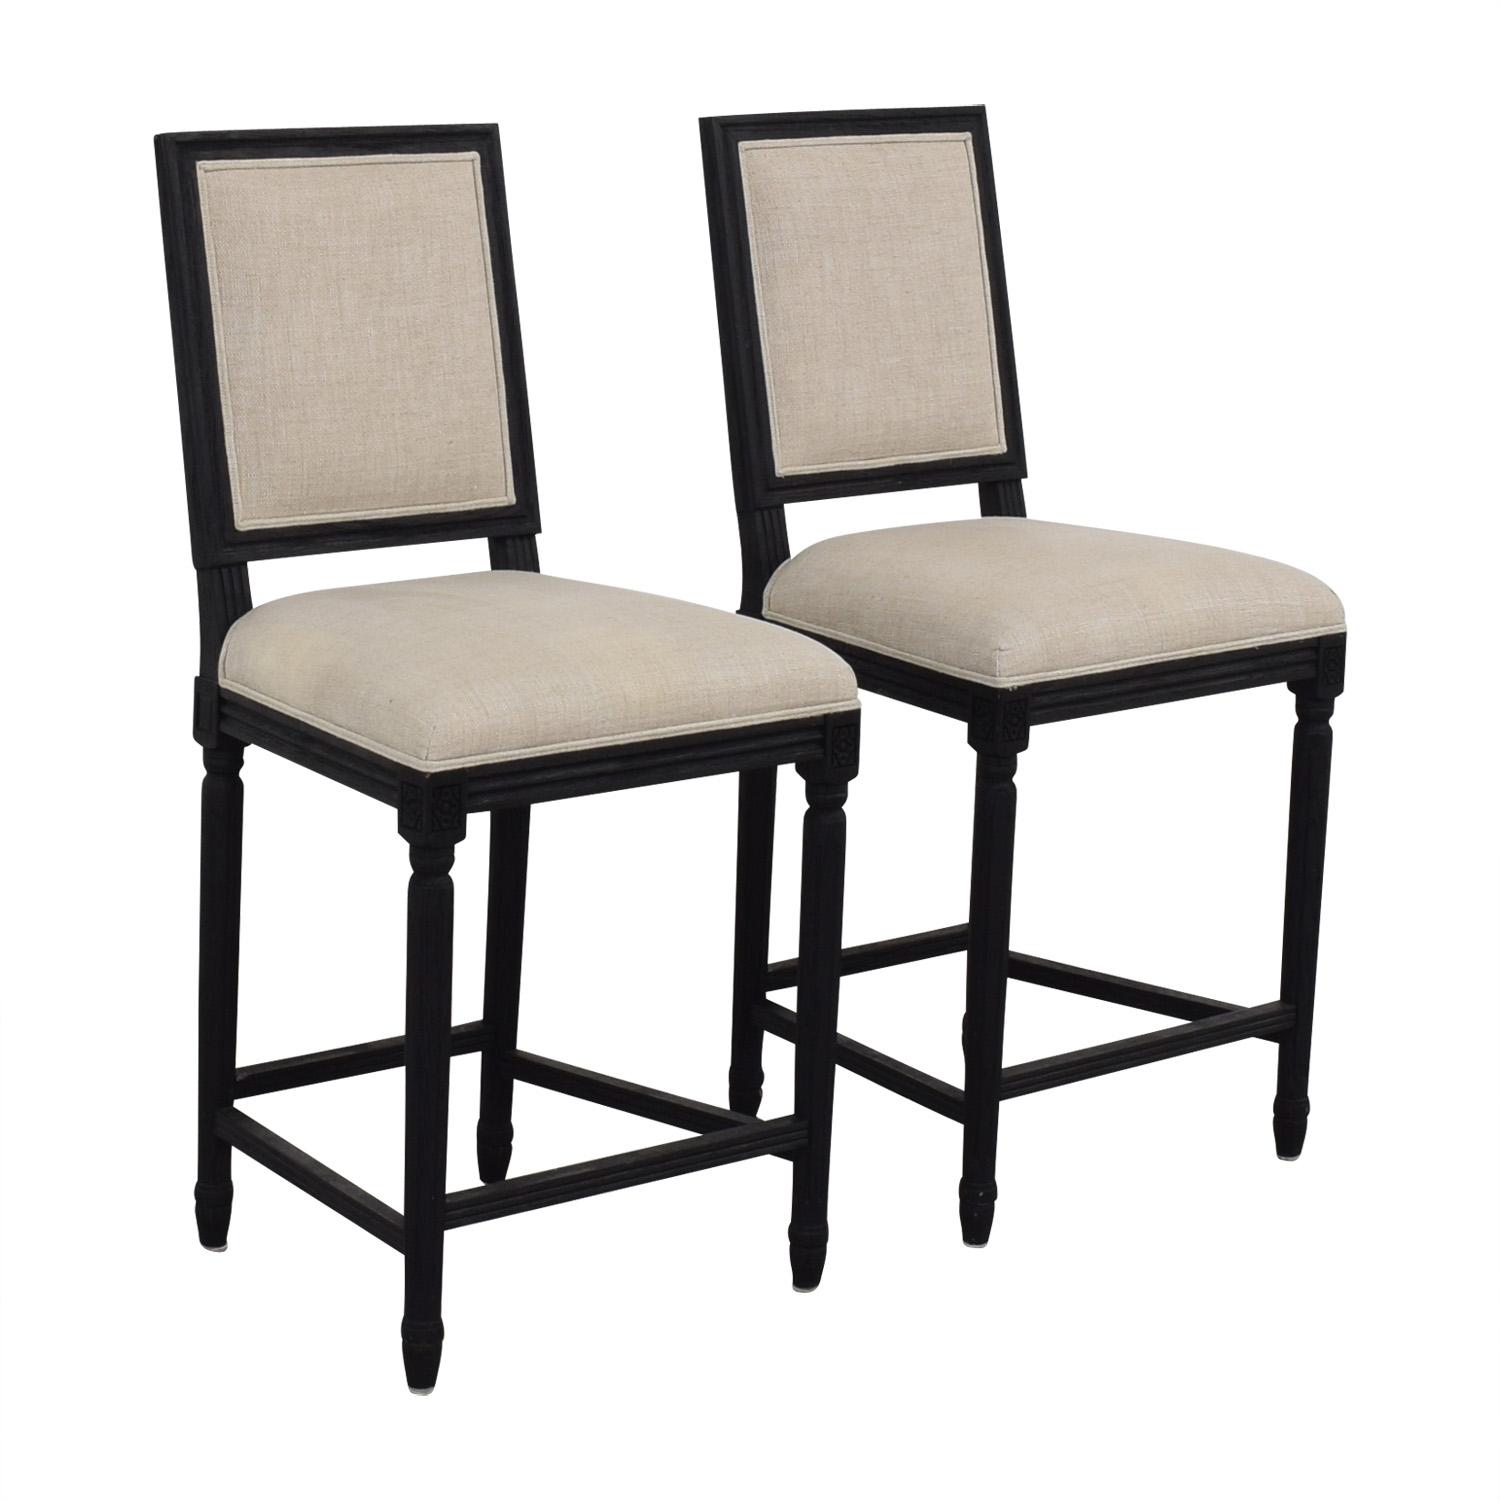 Restoration hardware Restoration Hardware Beige Upholstered Black Stools second hand